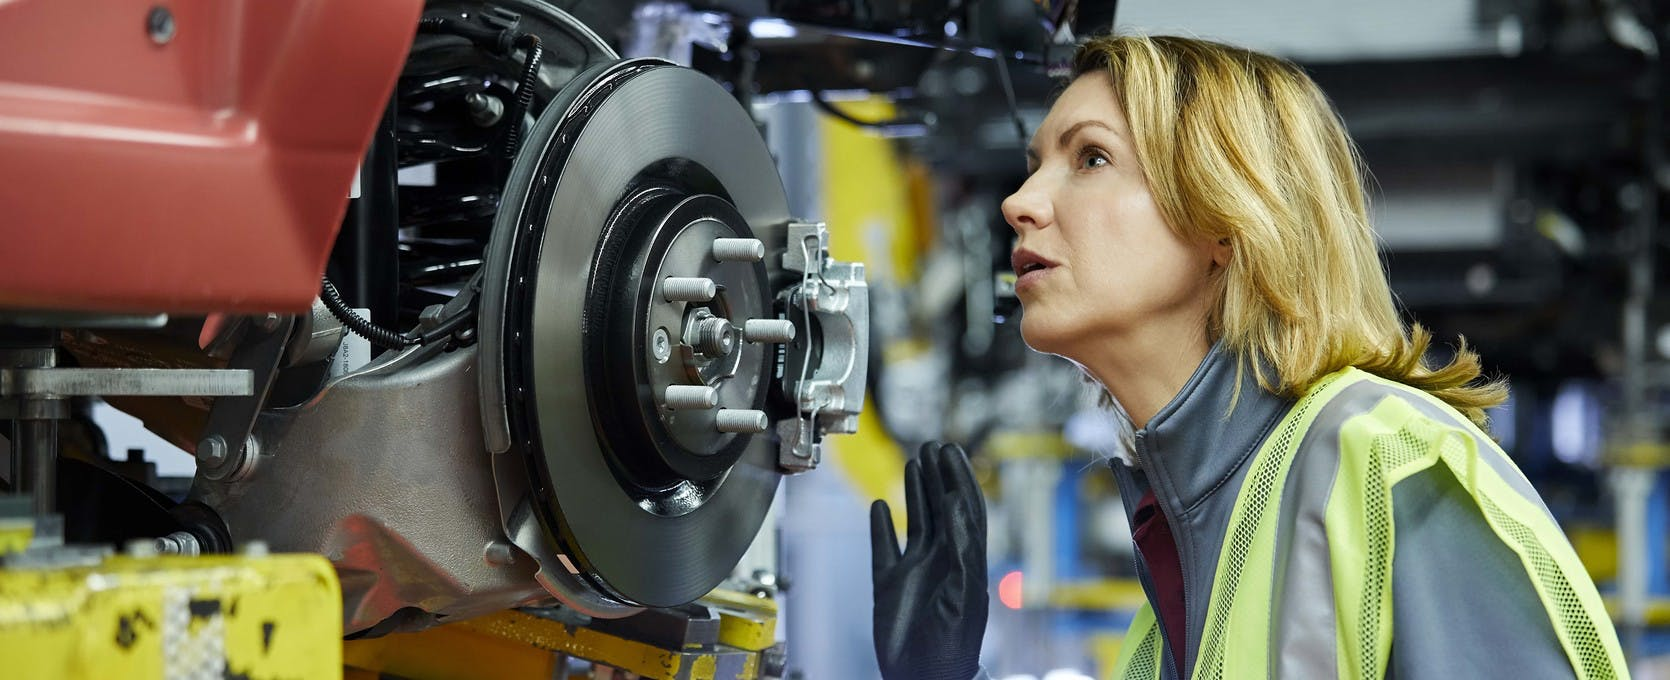 Automotive and mobility worker inspects car's drivetrain on the assembly line